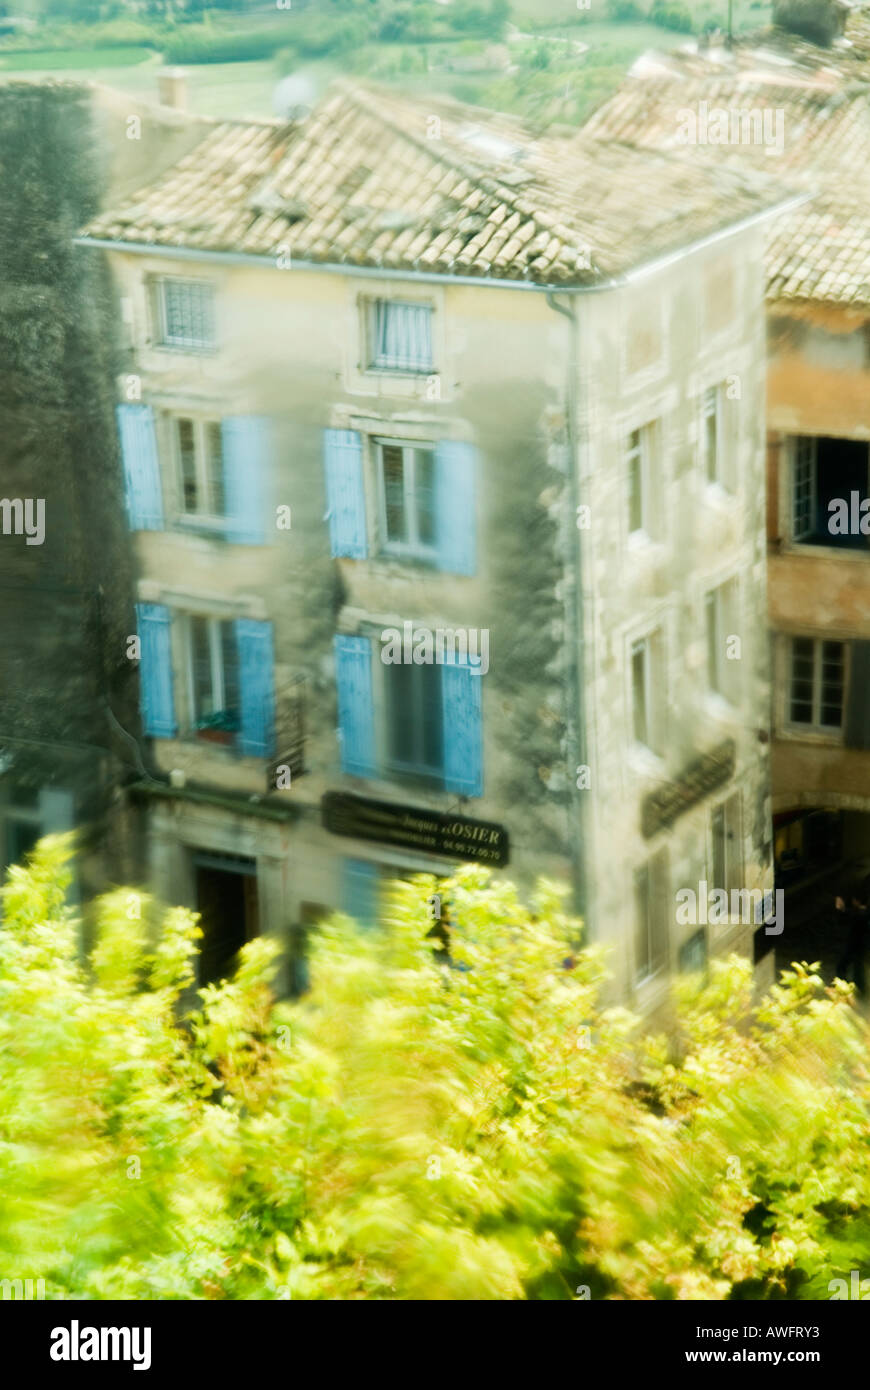 typical provencal building seen through a patterned window in Gordes, Provence, France - Stock Image